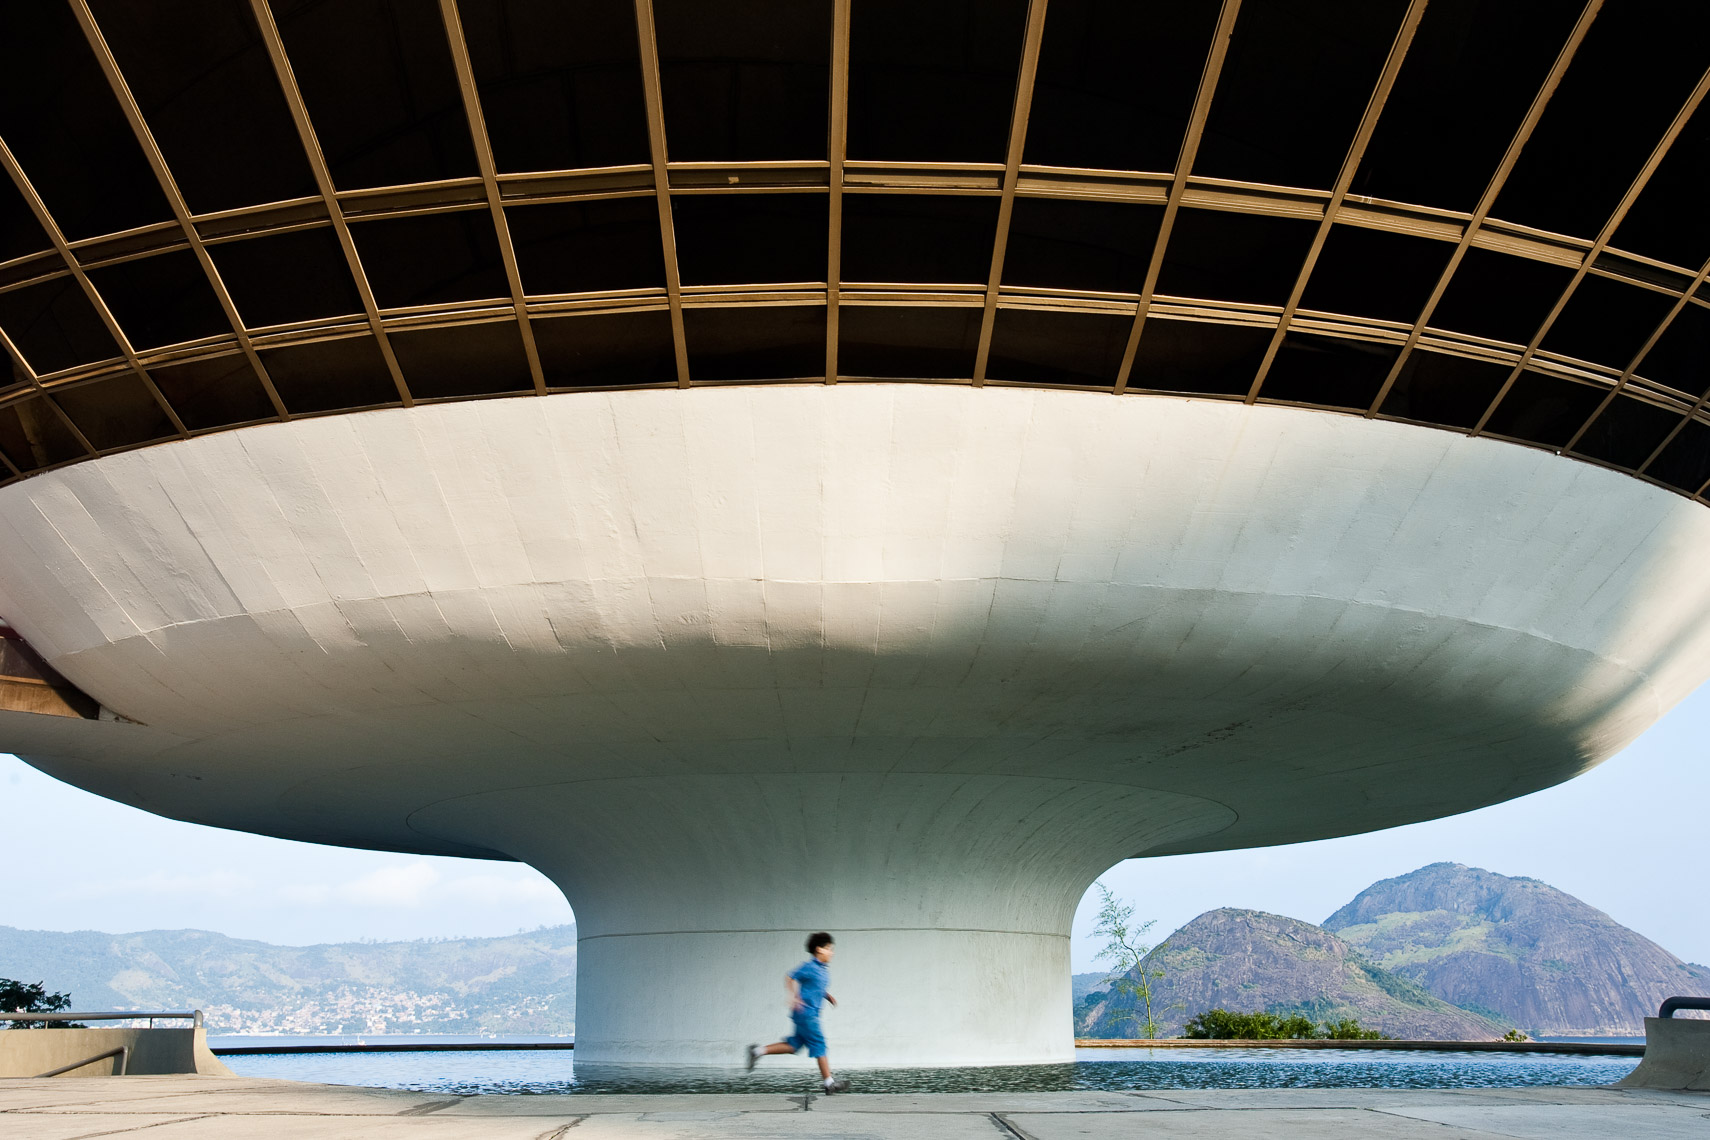 Child running in front of UFO shaped building at the edge of bay surrounded by mountains